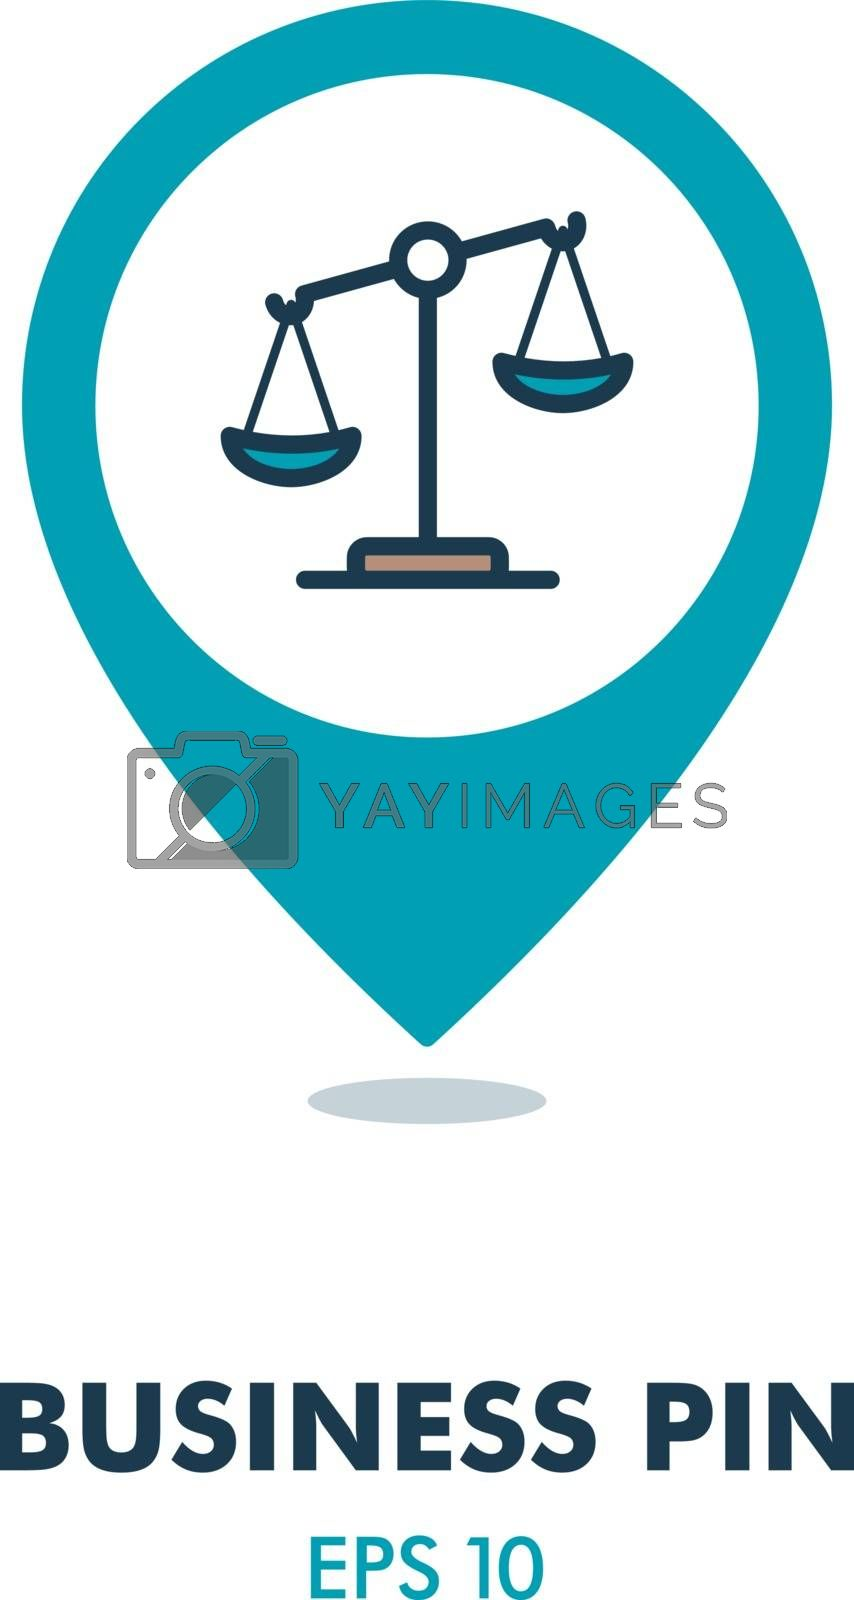 Law scale vector icon, justice pin map icon by nosik